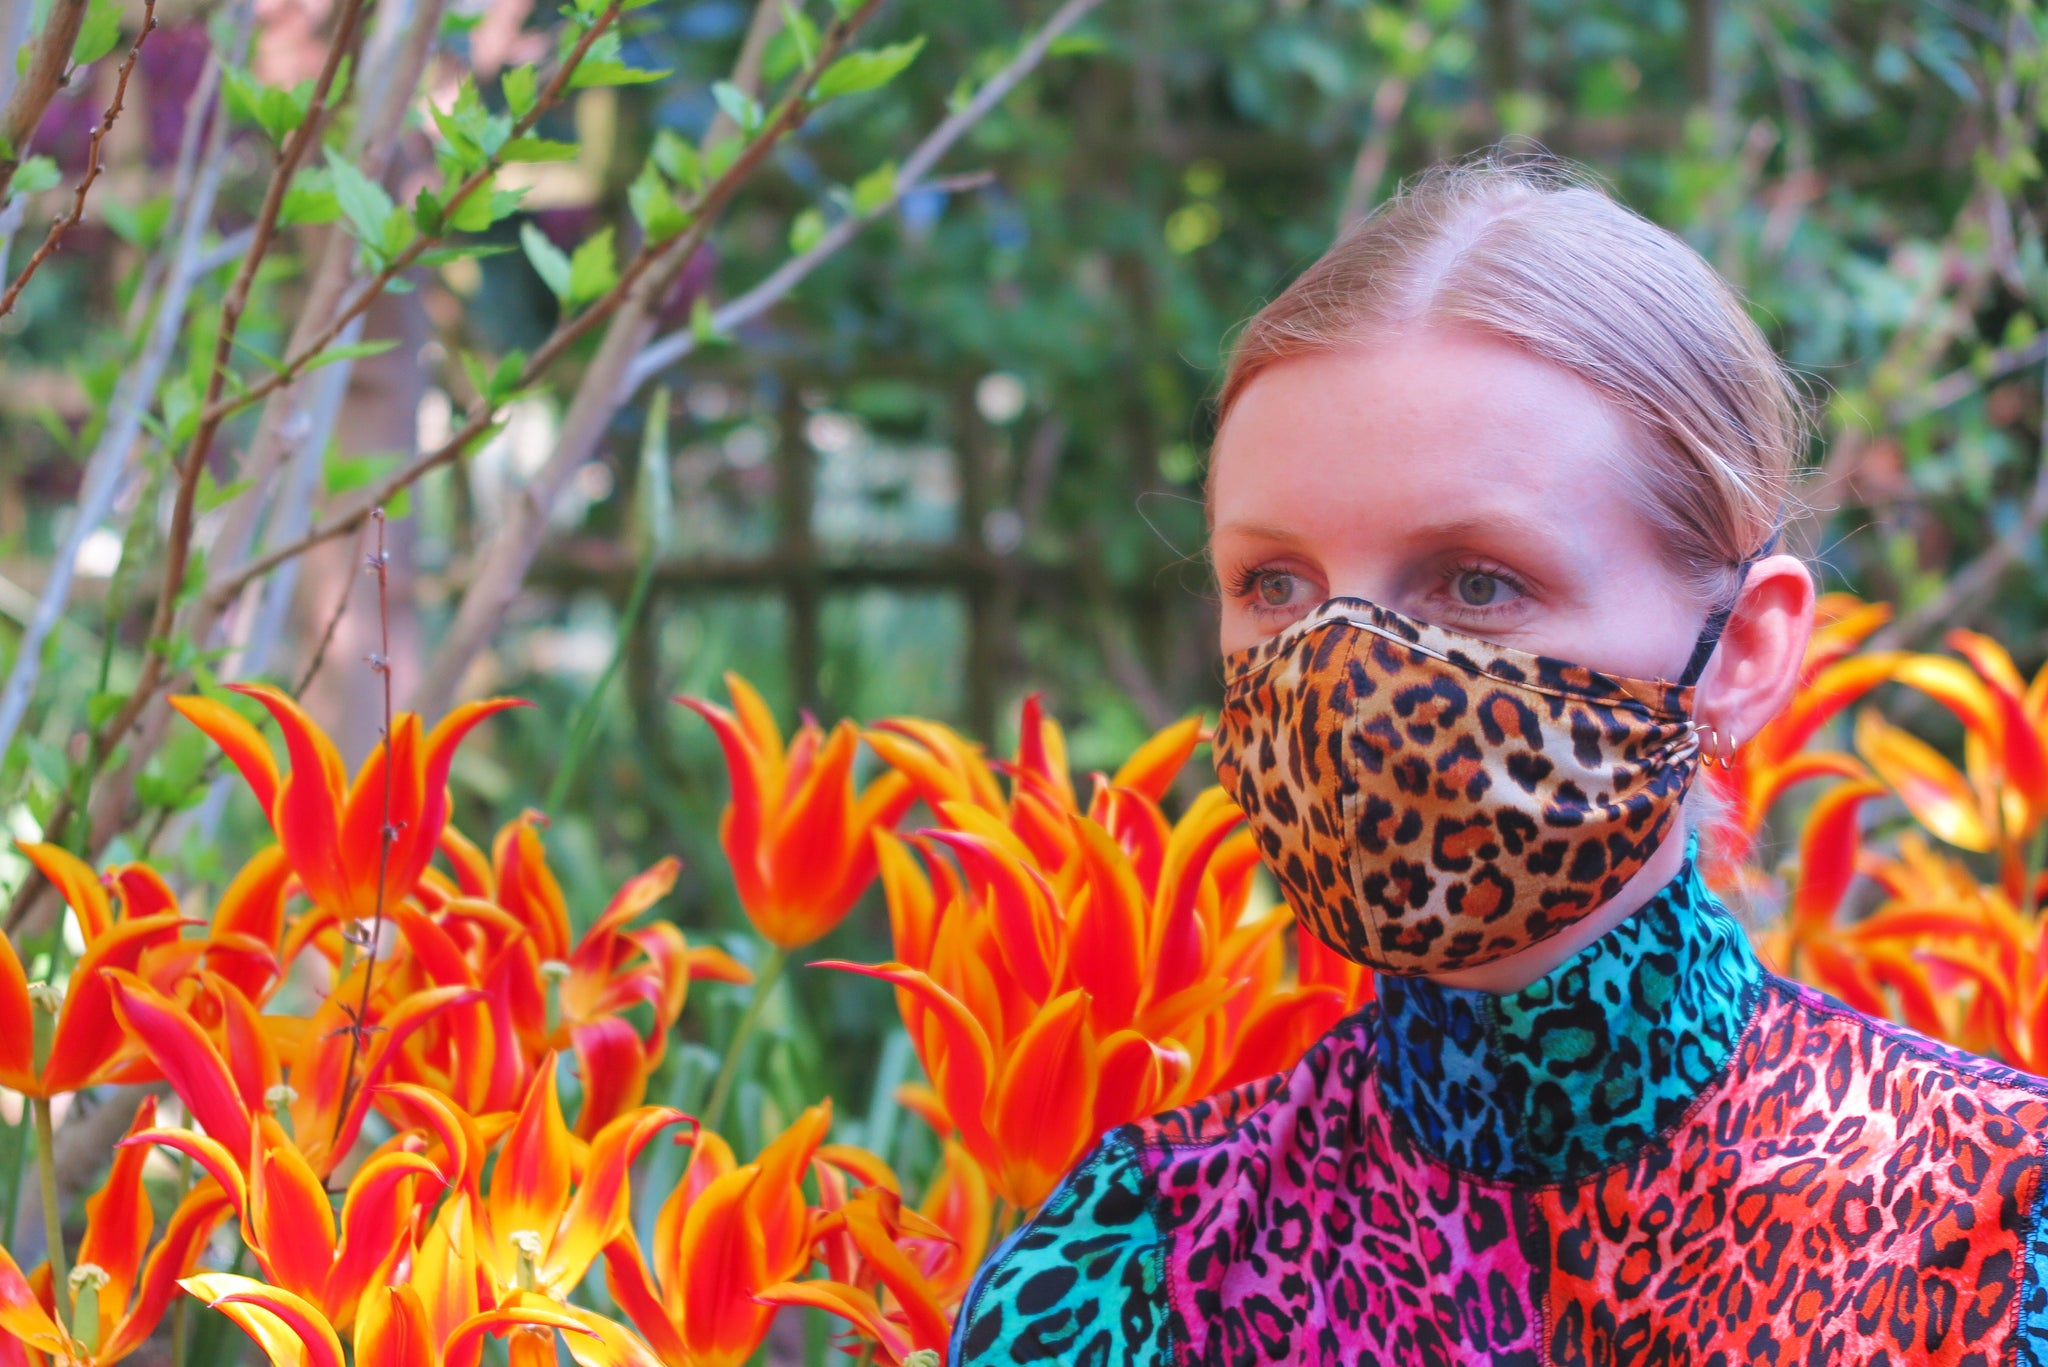 Leopard Face mask and tulip garden